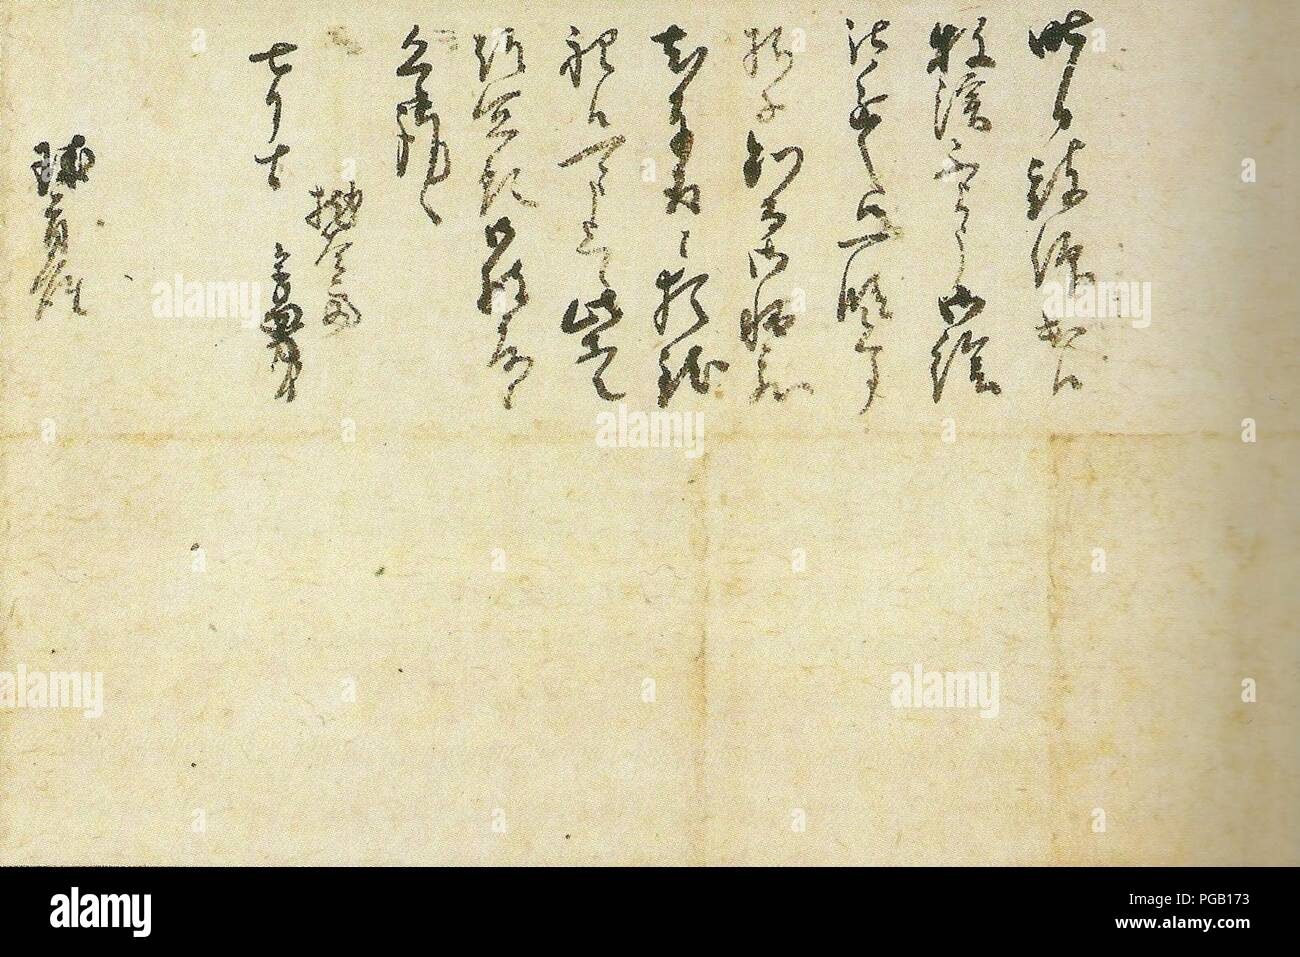 Authentication by Sen no Rikyu of Muqi Hibiscus (Daitokuji). - Stock Image